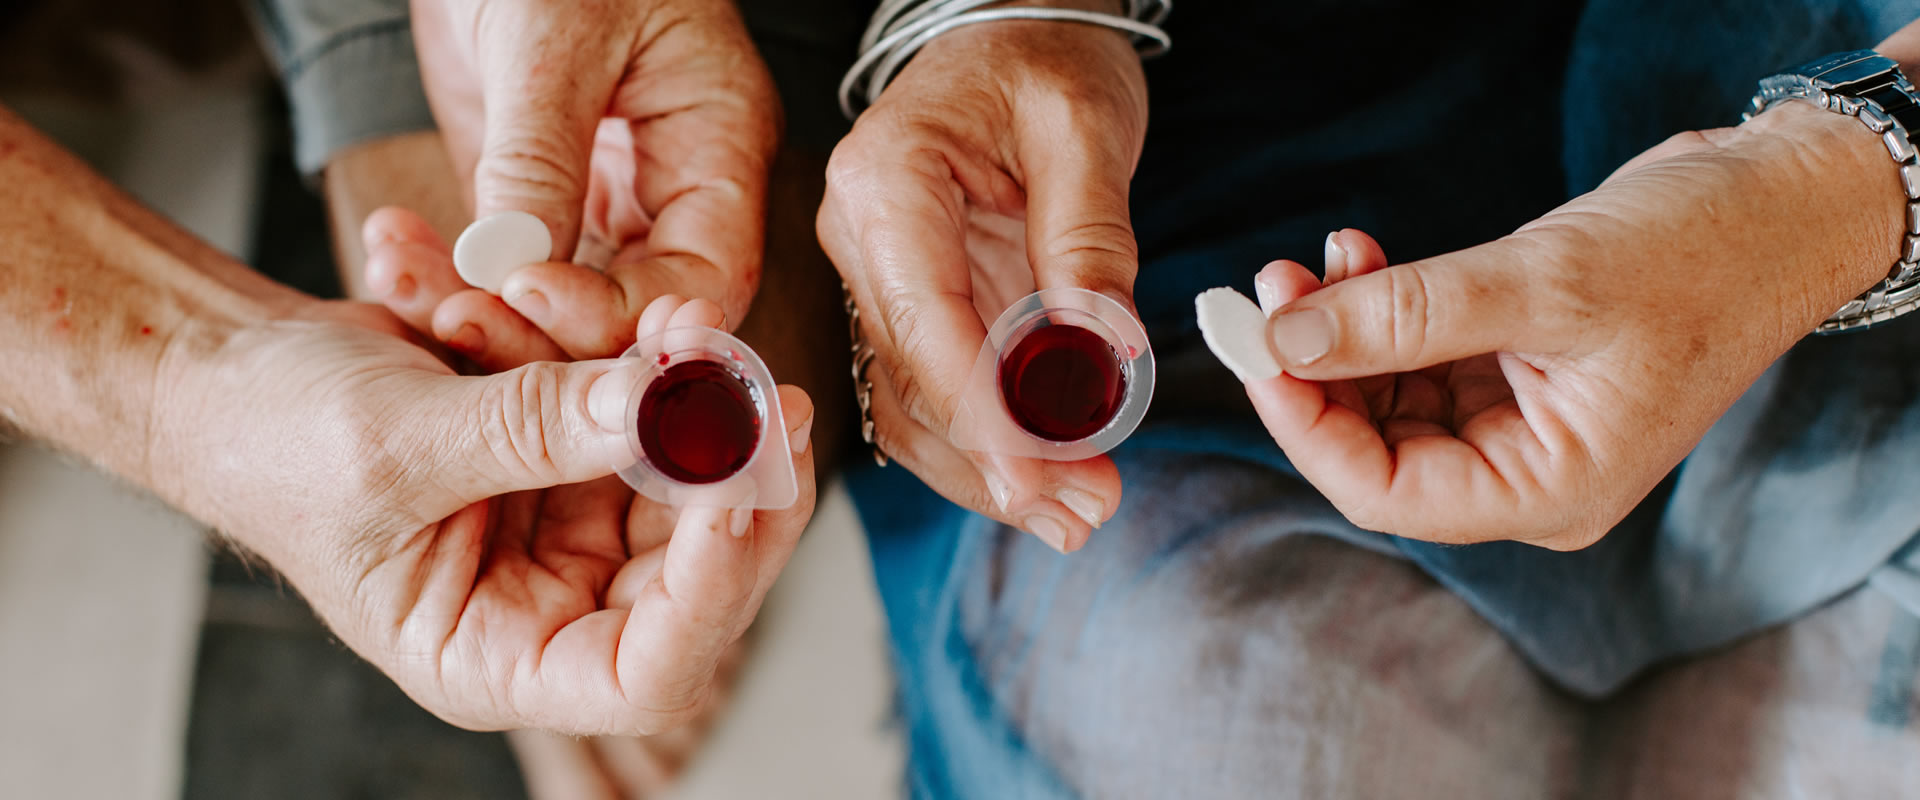 The Miracle Meal Sharing Communion